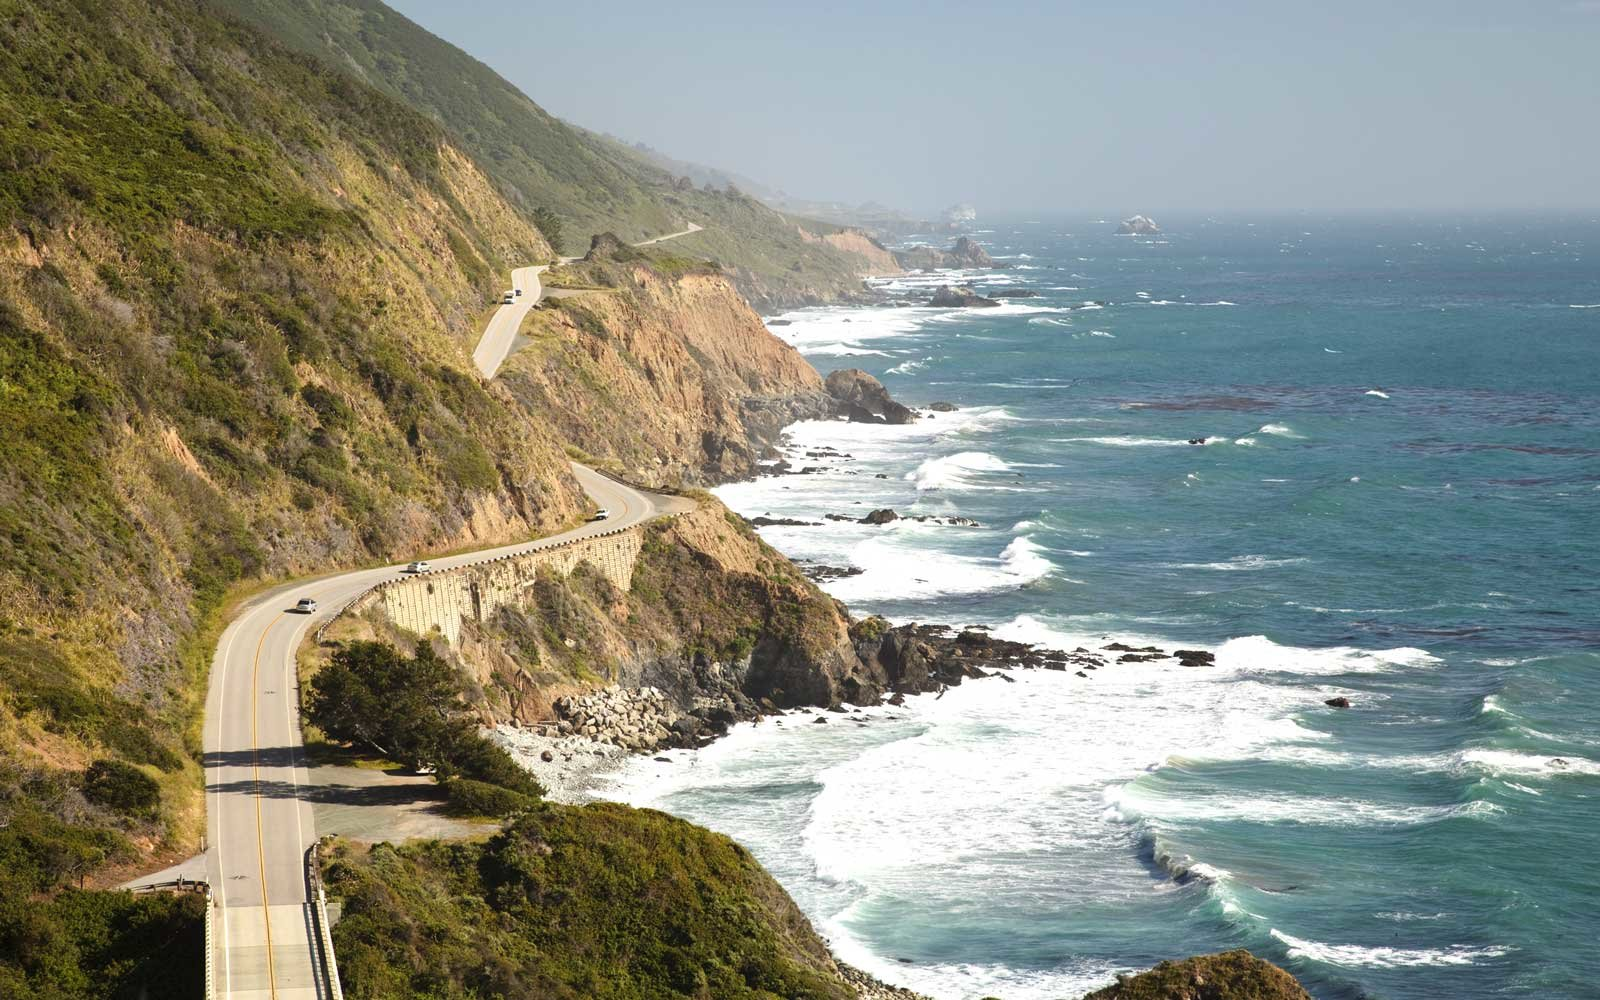 Aerial view of the Highway 1 at big sur, California